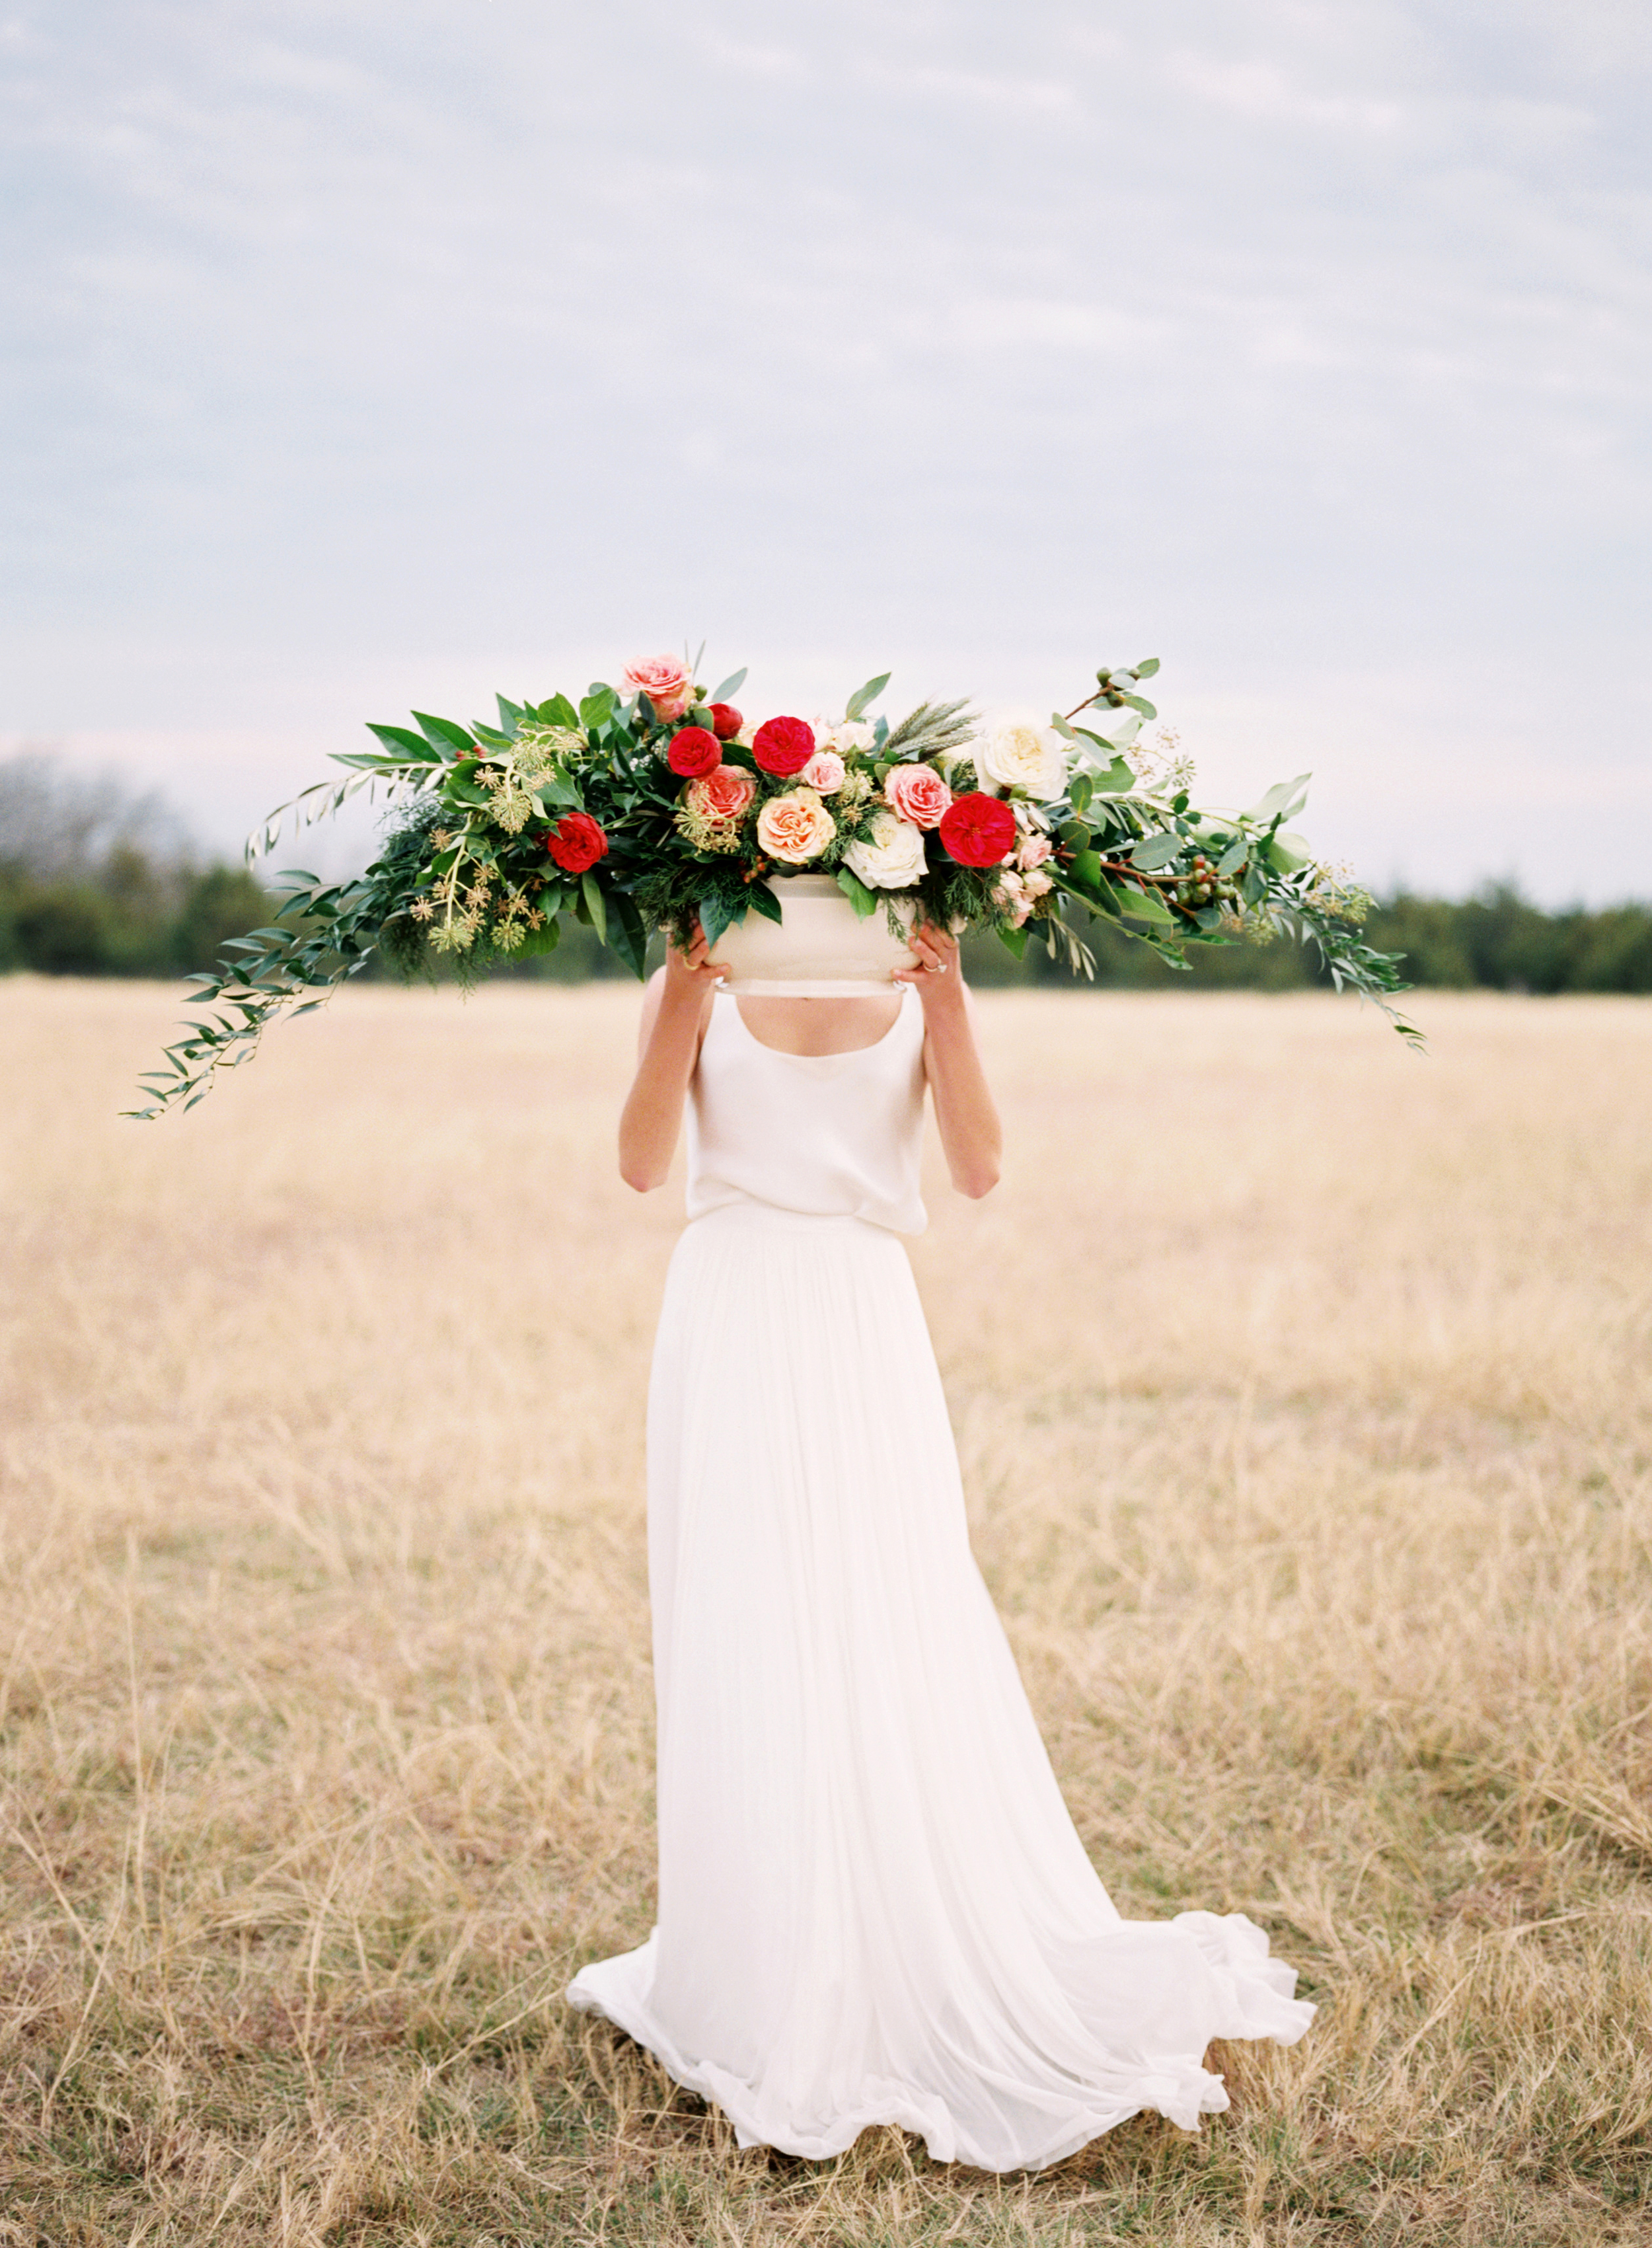 Alpaca Farm Wedding Inspiration - Lindsey Brunk